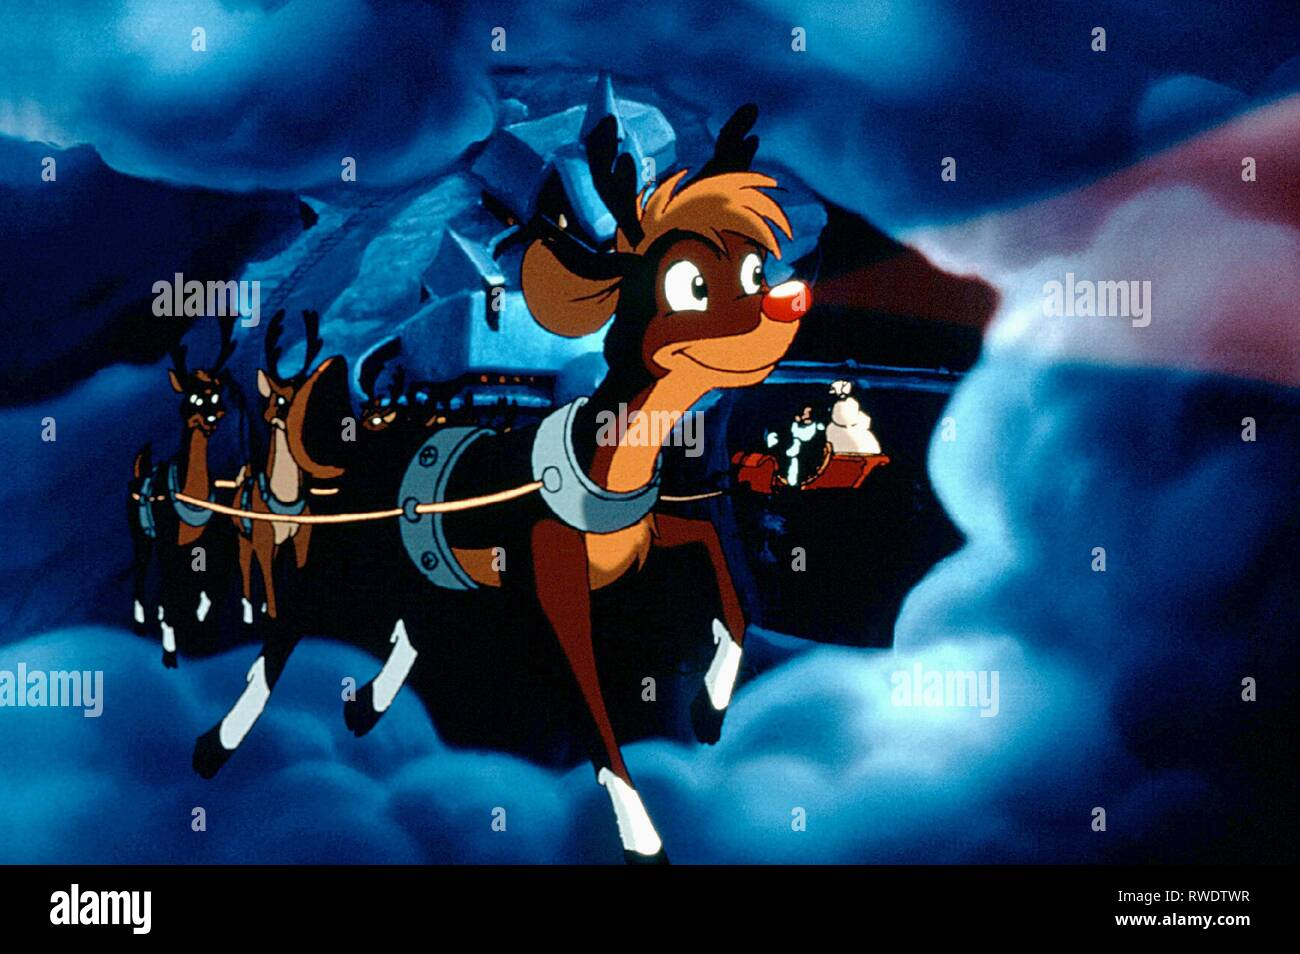 Rudolph The Red Nosed Reindeer Movie High Resolution Stock Photography And Images Alamy,Man Cave Home Bar Ideas On A Budget